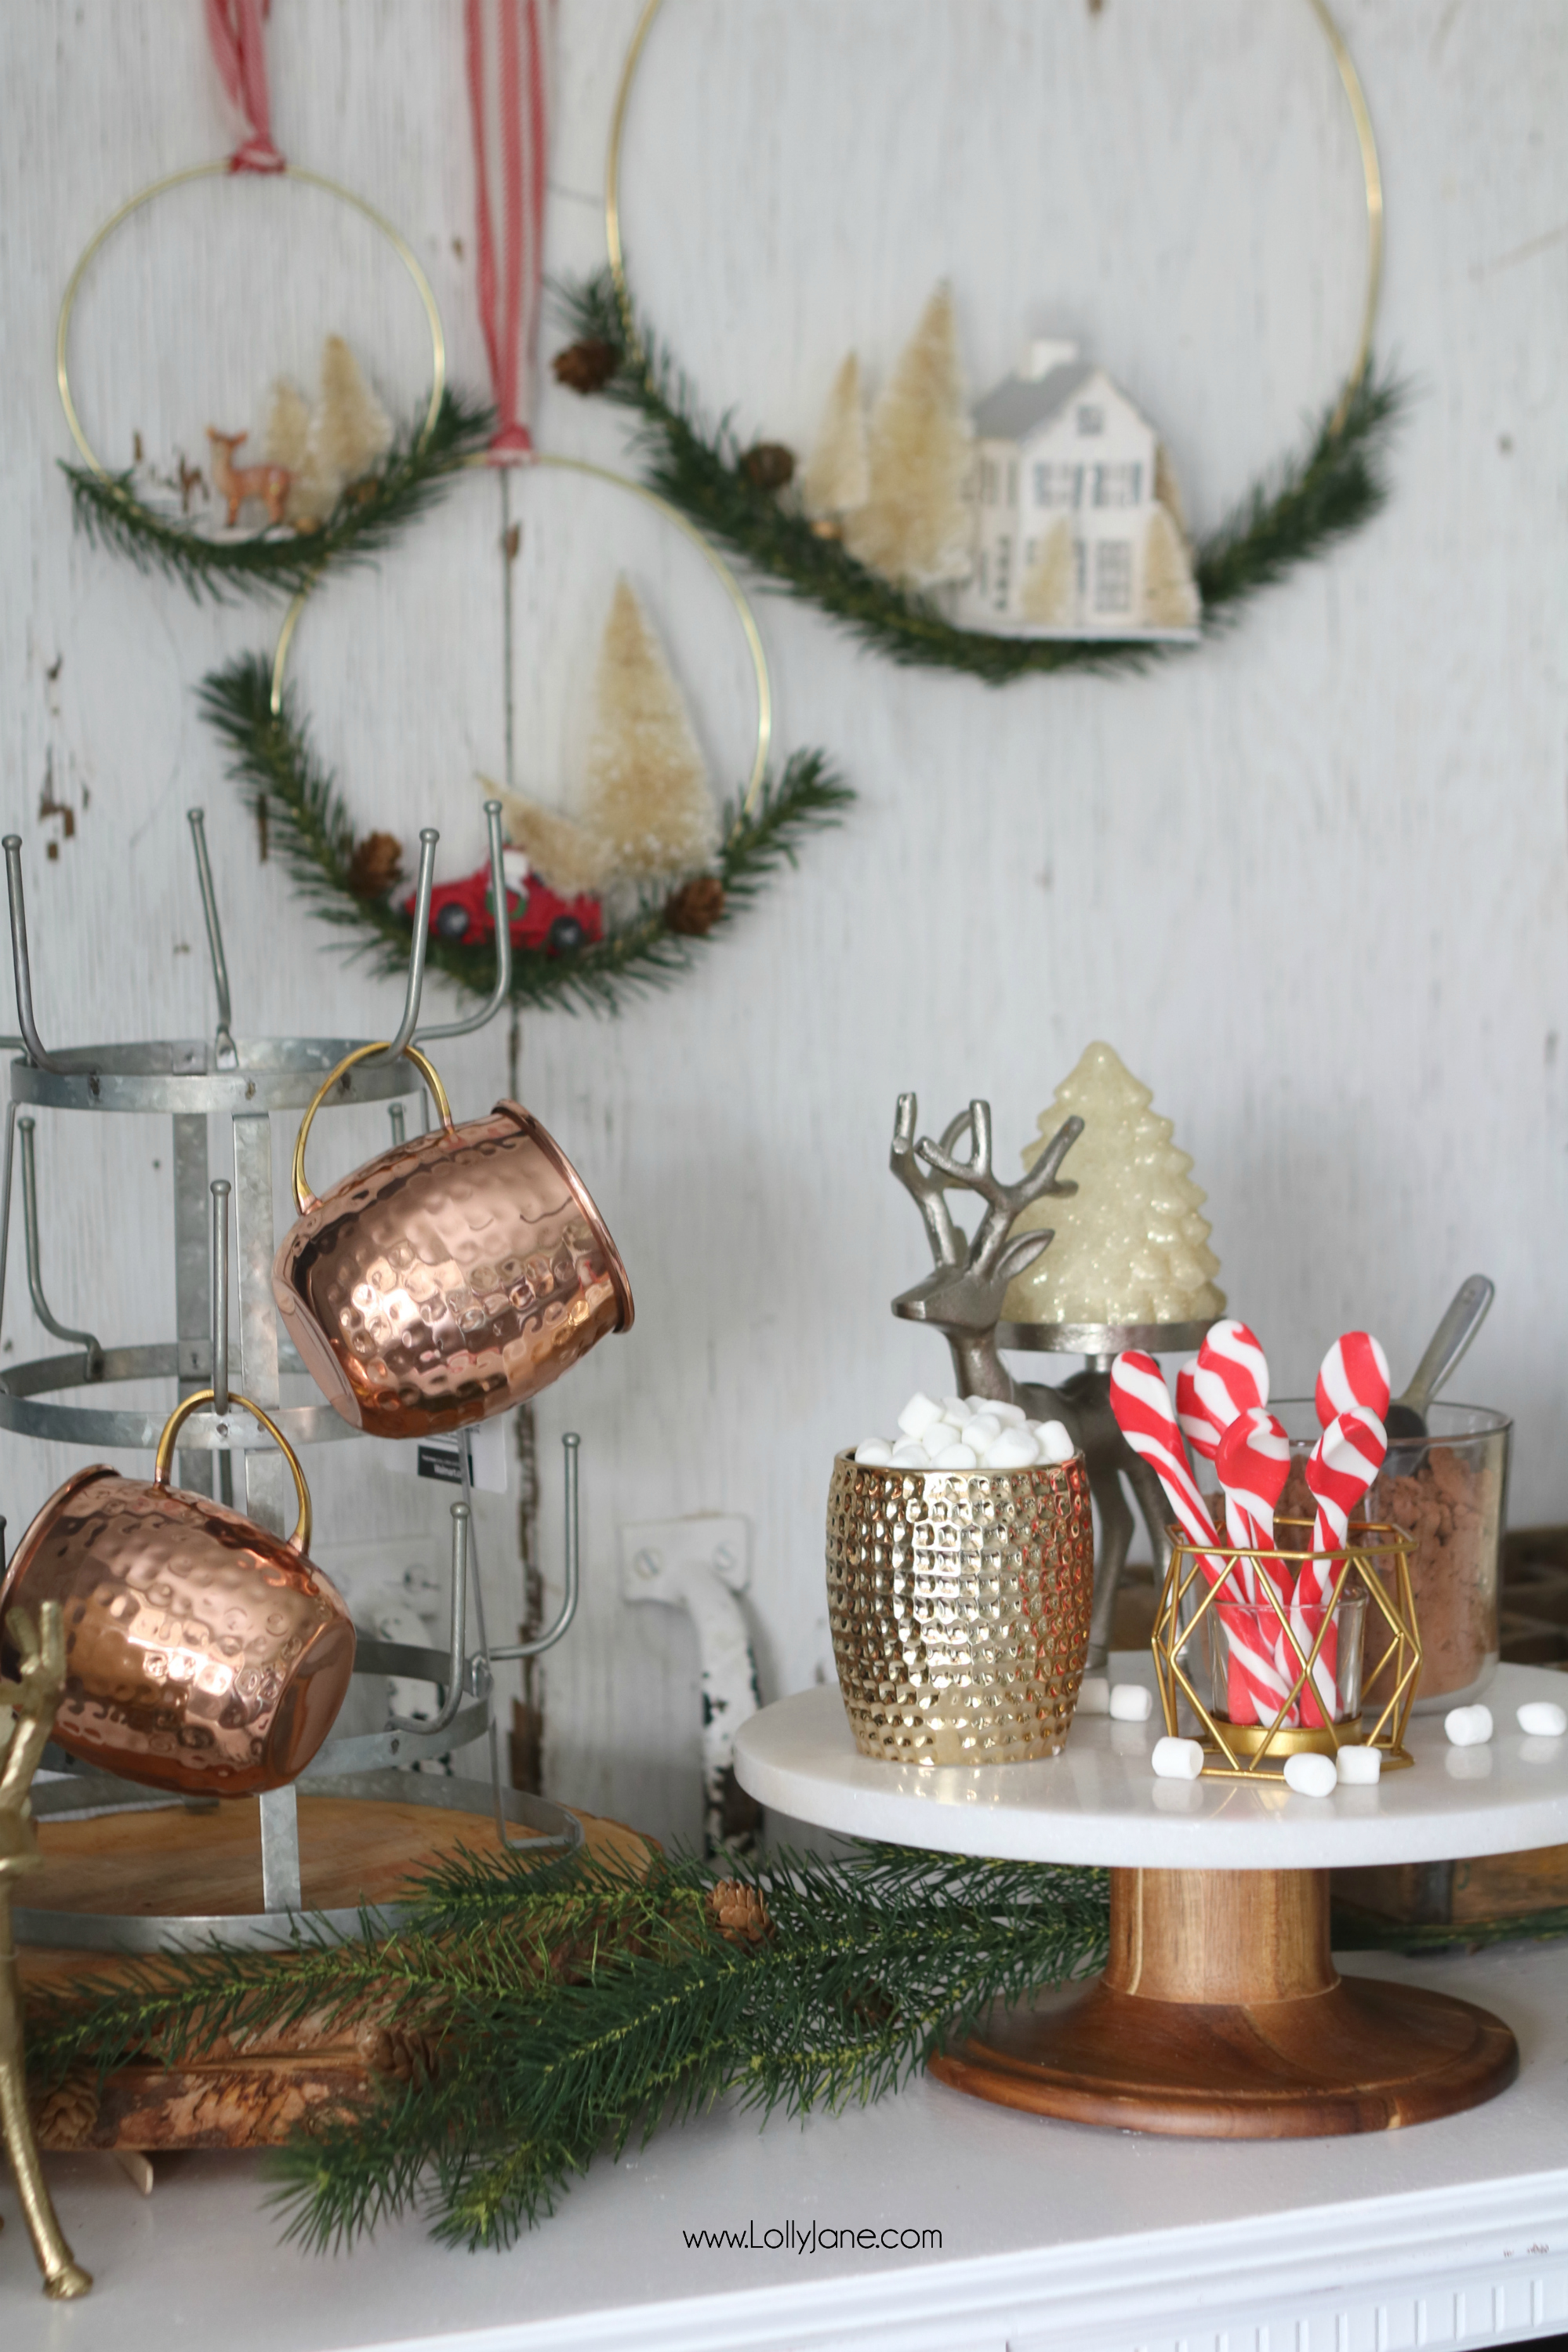 Easy Rustic Glam Hot Chocolate Bar, perfect station to grab and go! Love this setup to leave up all season!